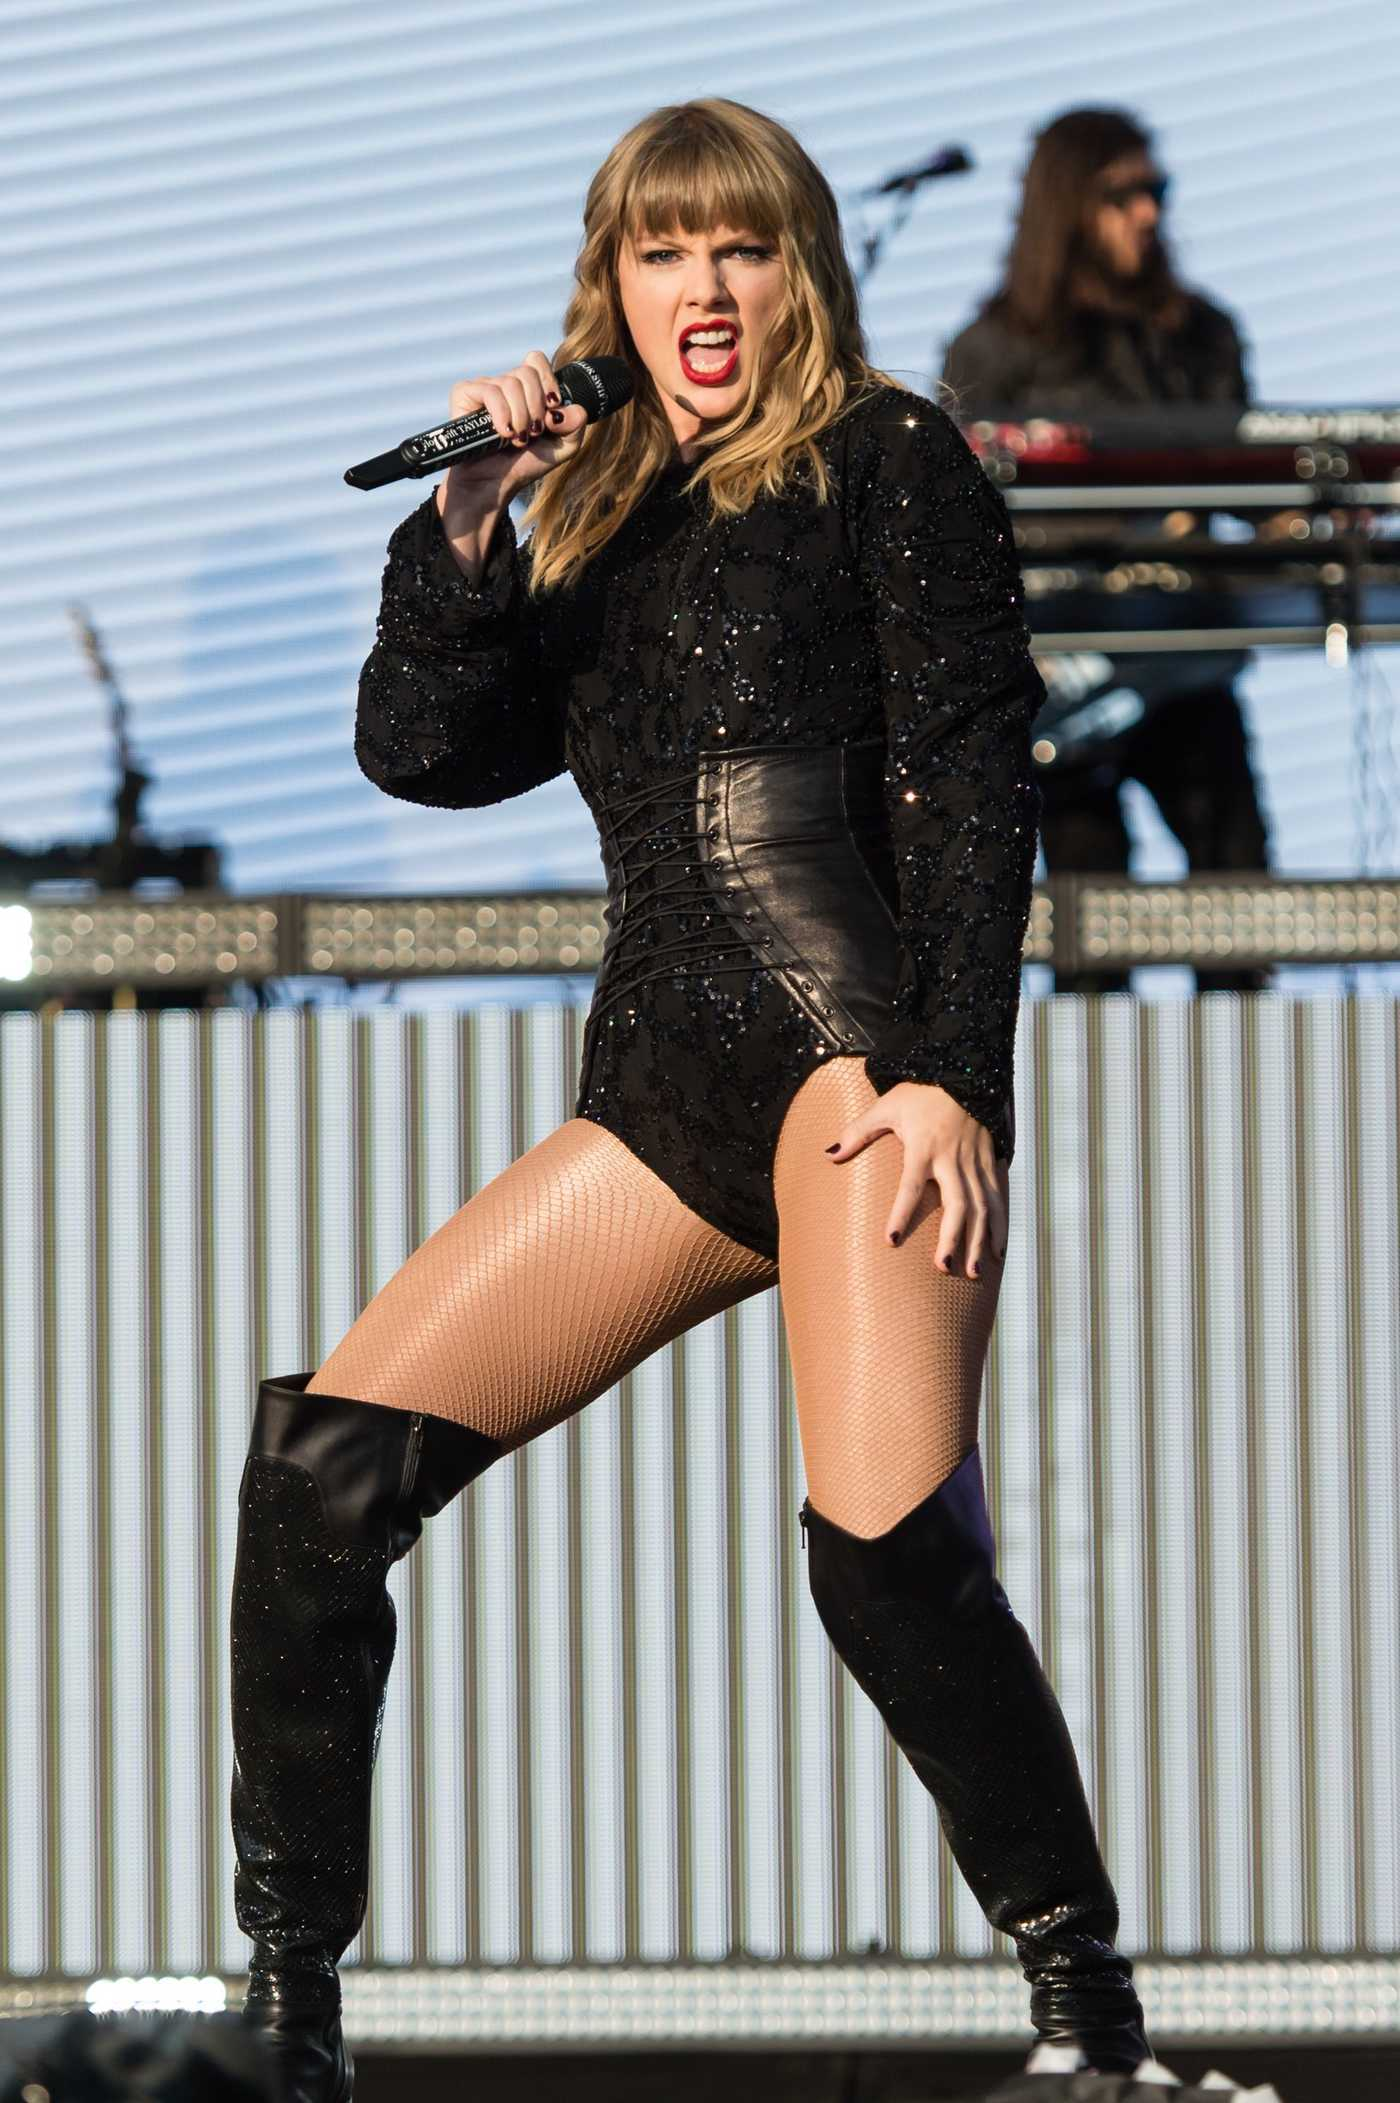 Taylor Swift Performs at BBC The Biggest Weekend Festival in Swansea 05/27/2018